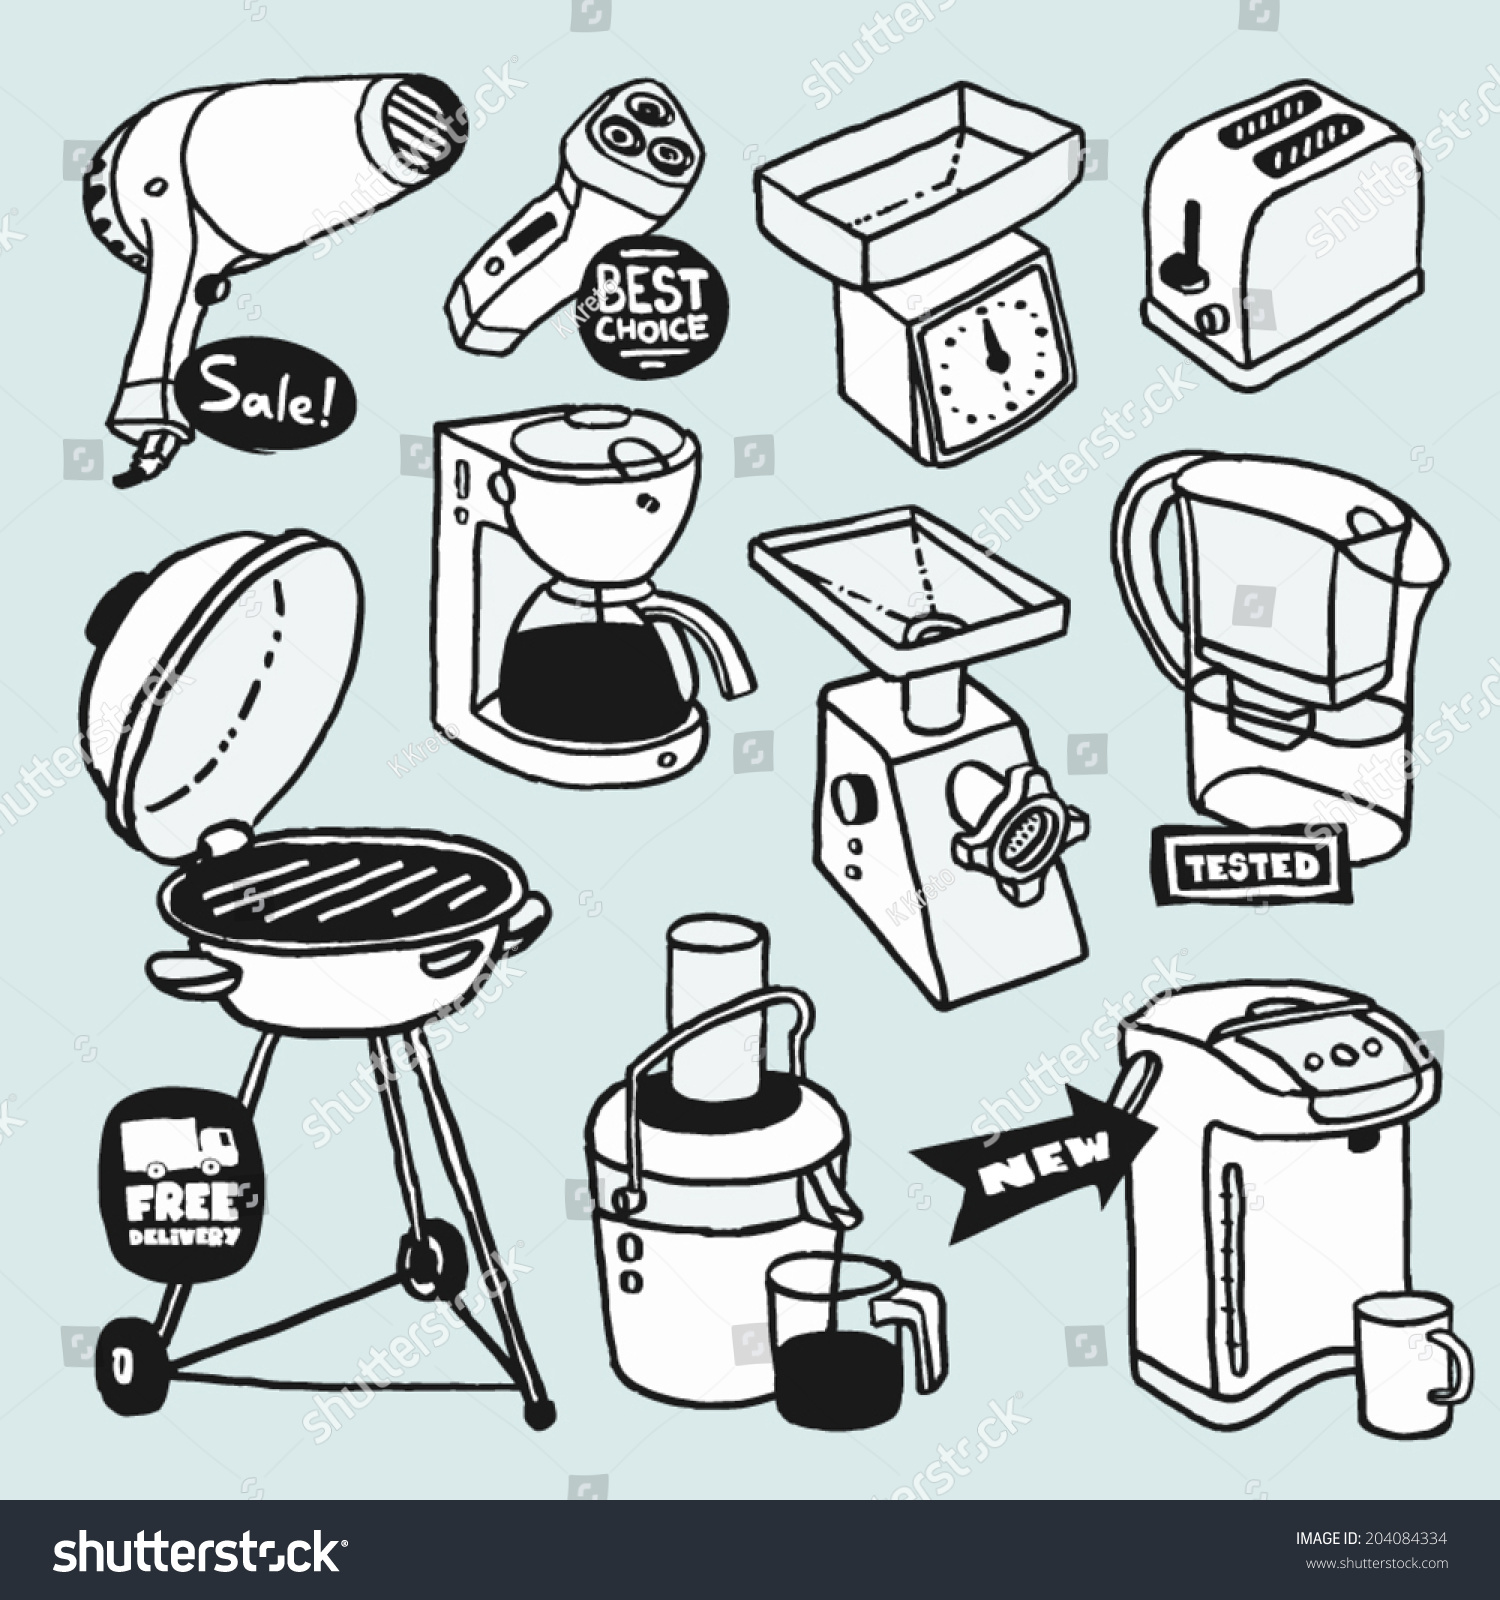 Cartoon kitchen appliances - Hand Drawn Cartoon Illustrations With Electric House Appliances Shaver Hair Dryer Toaster